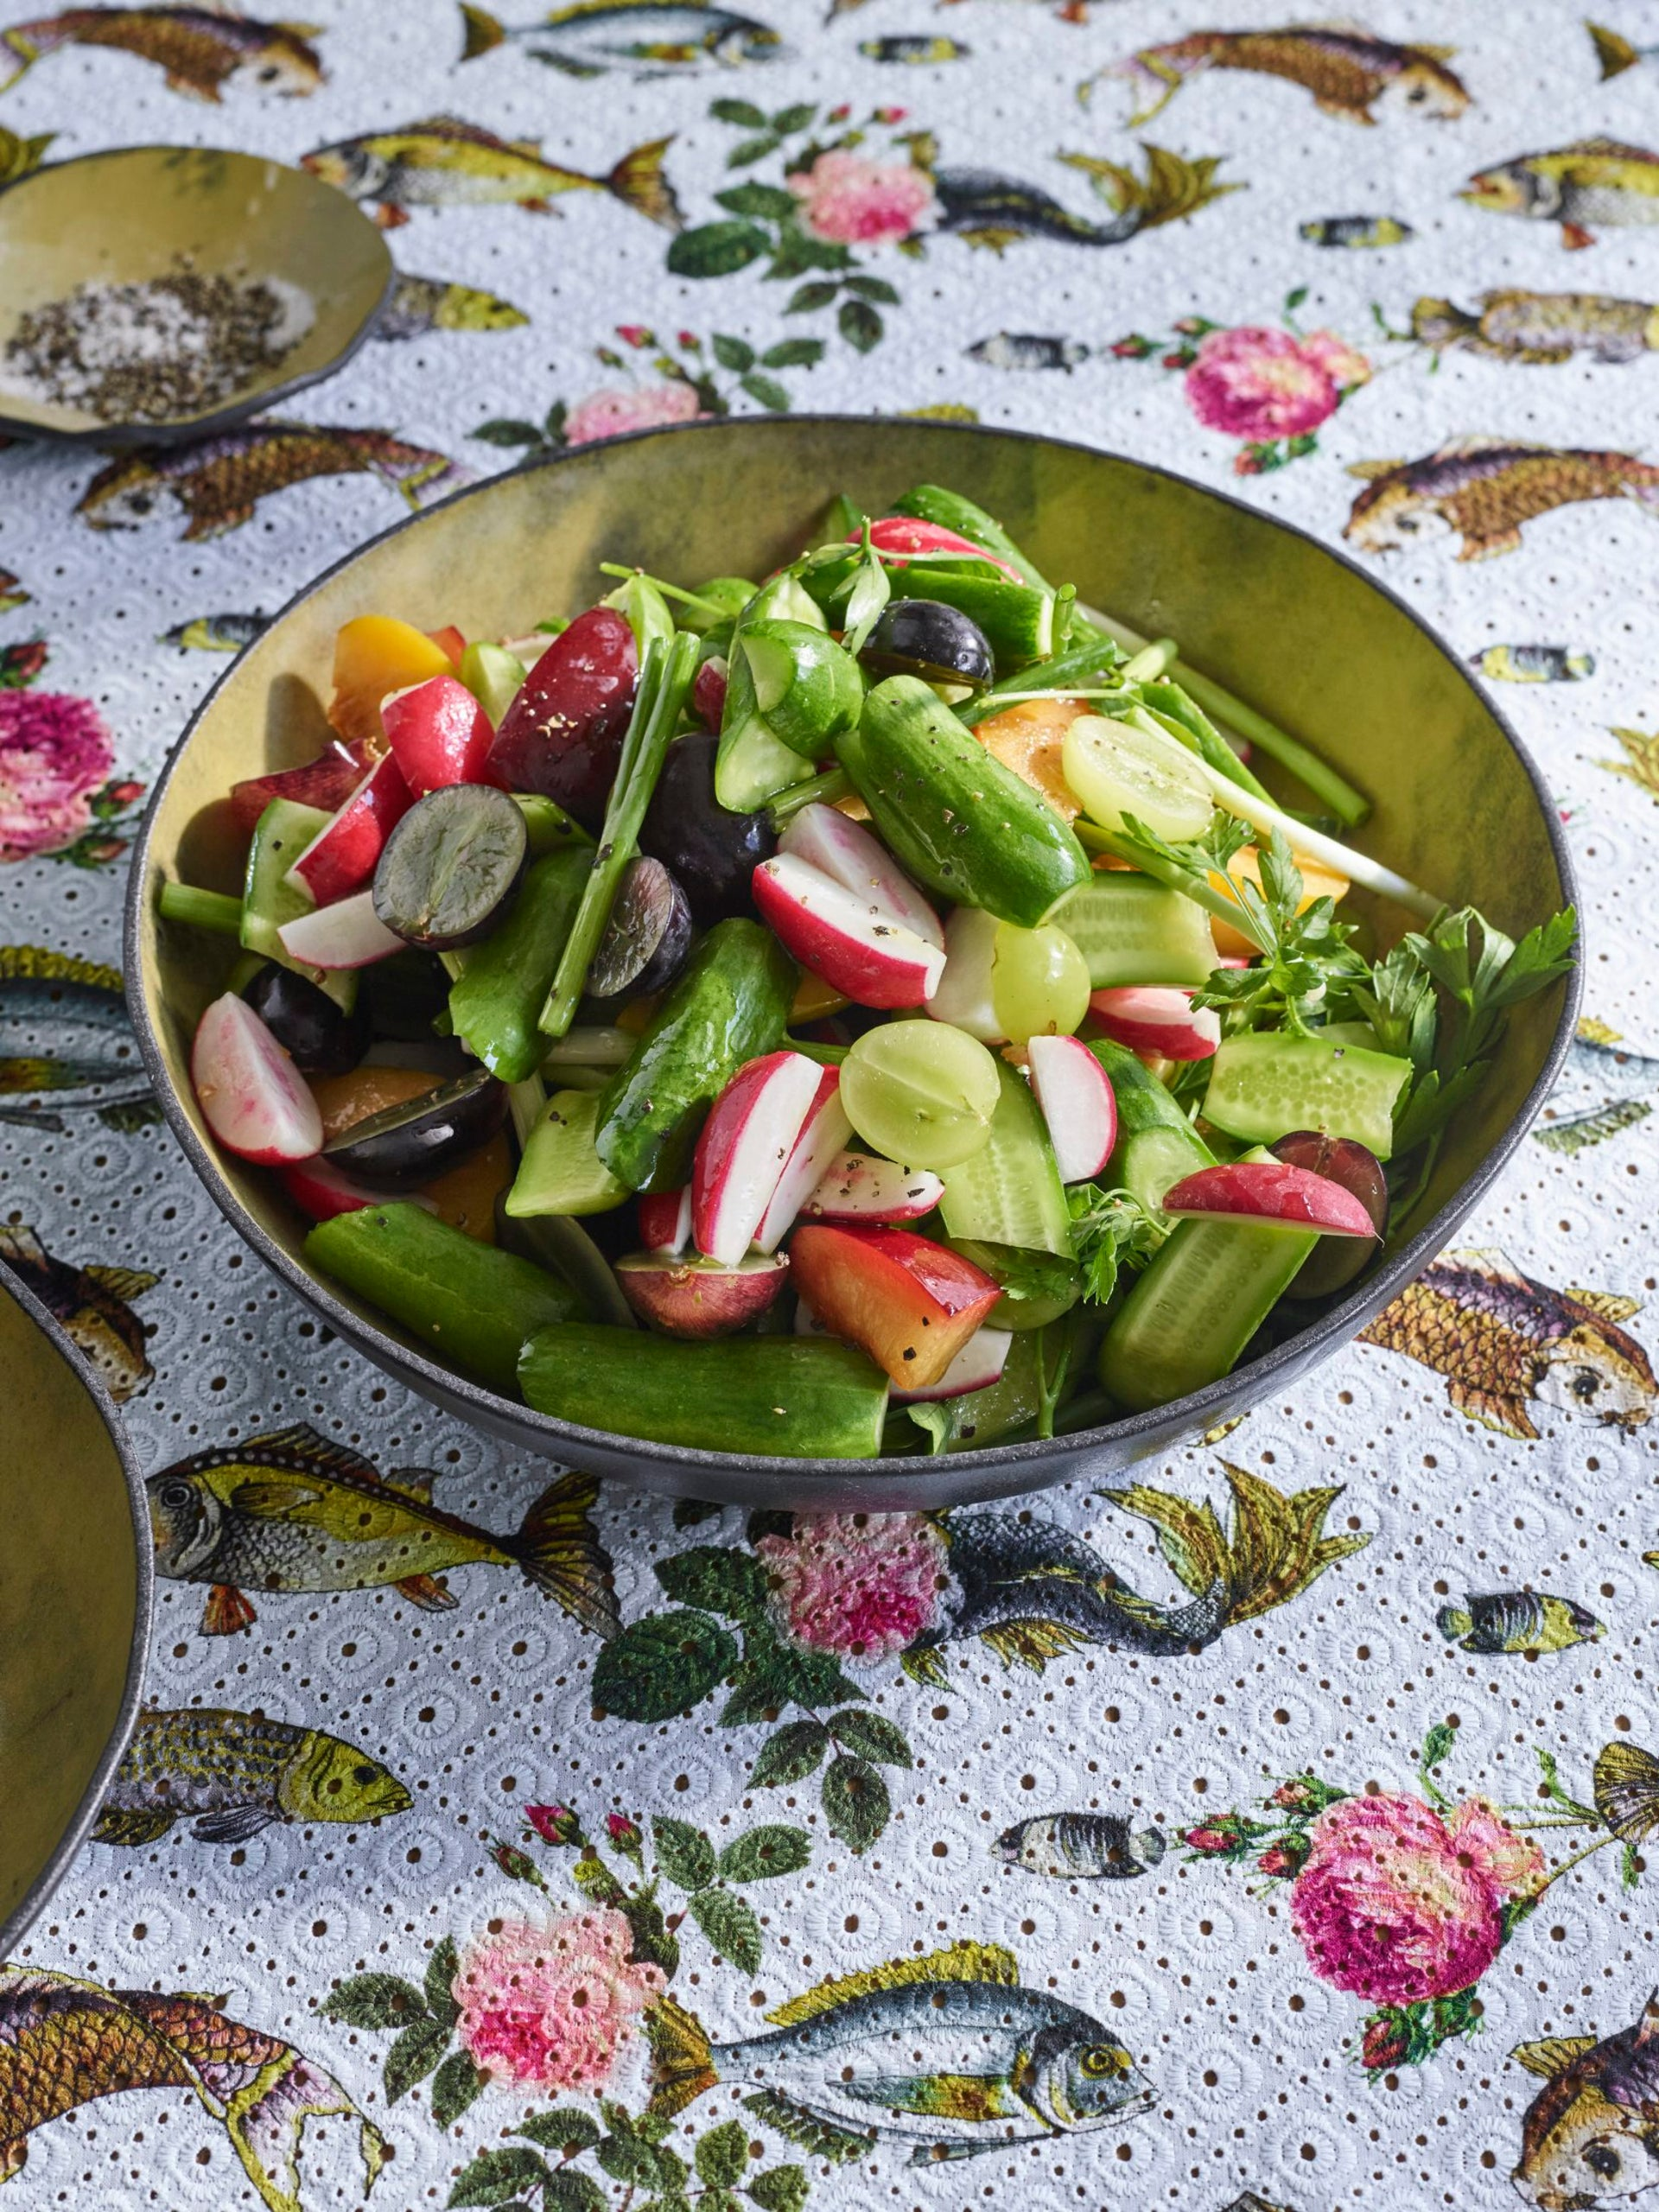 Fruit and vegetable salad.